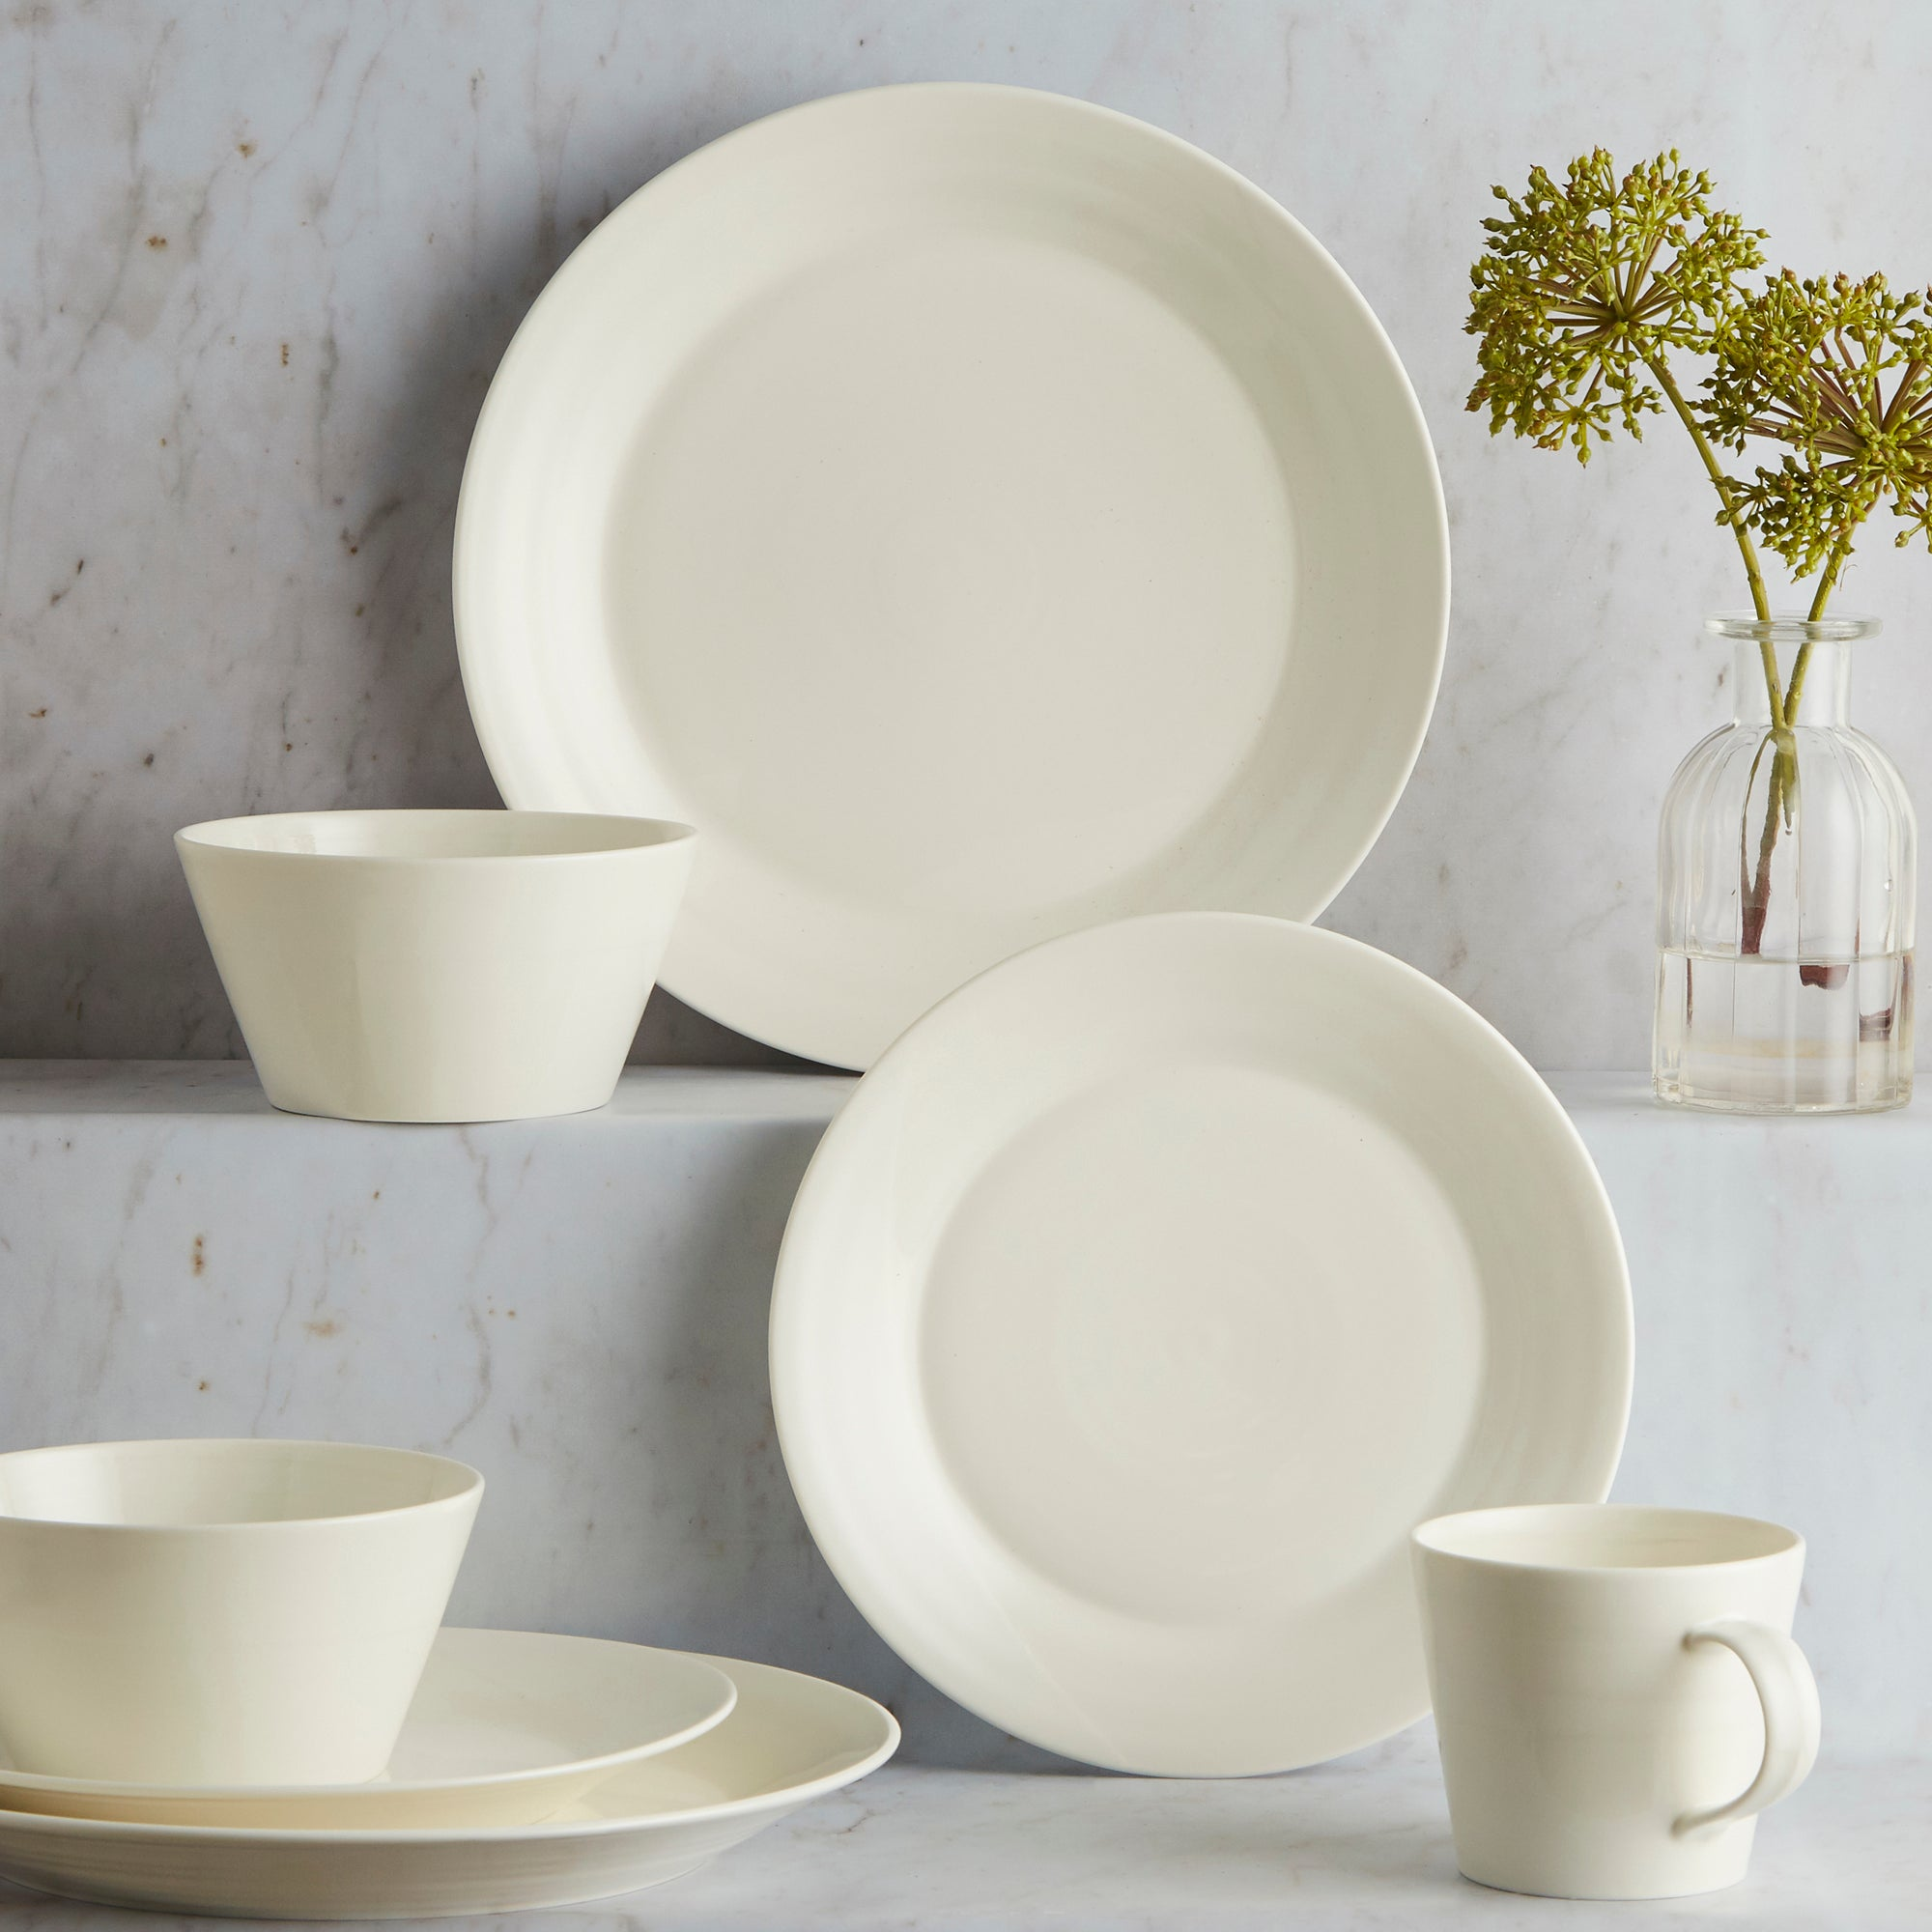 Royal Doulton White 1815 Collection 16 Piece Dinnerset